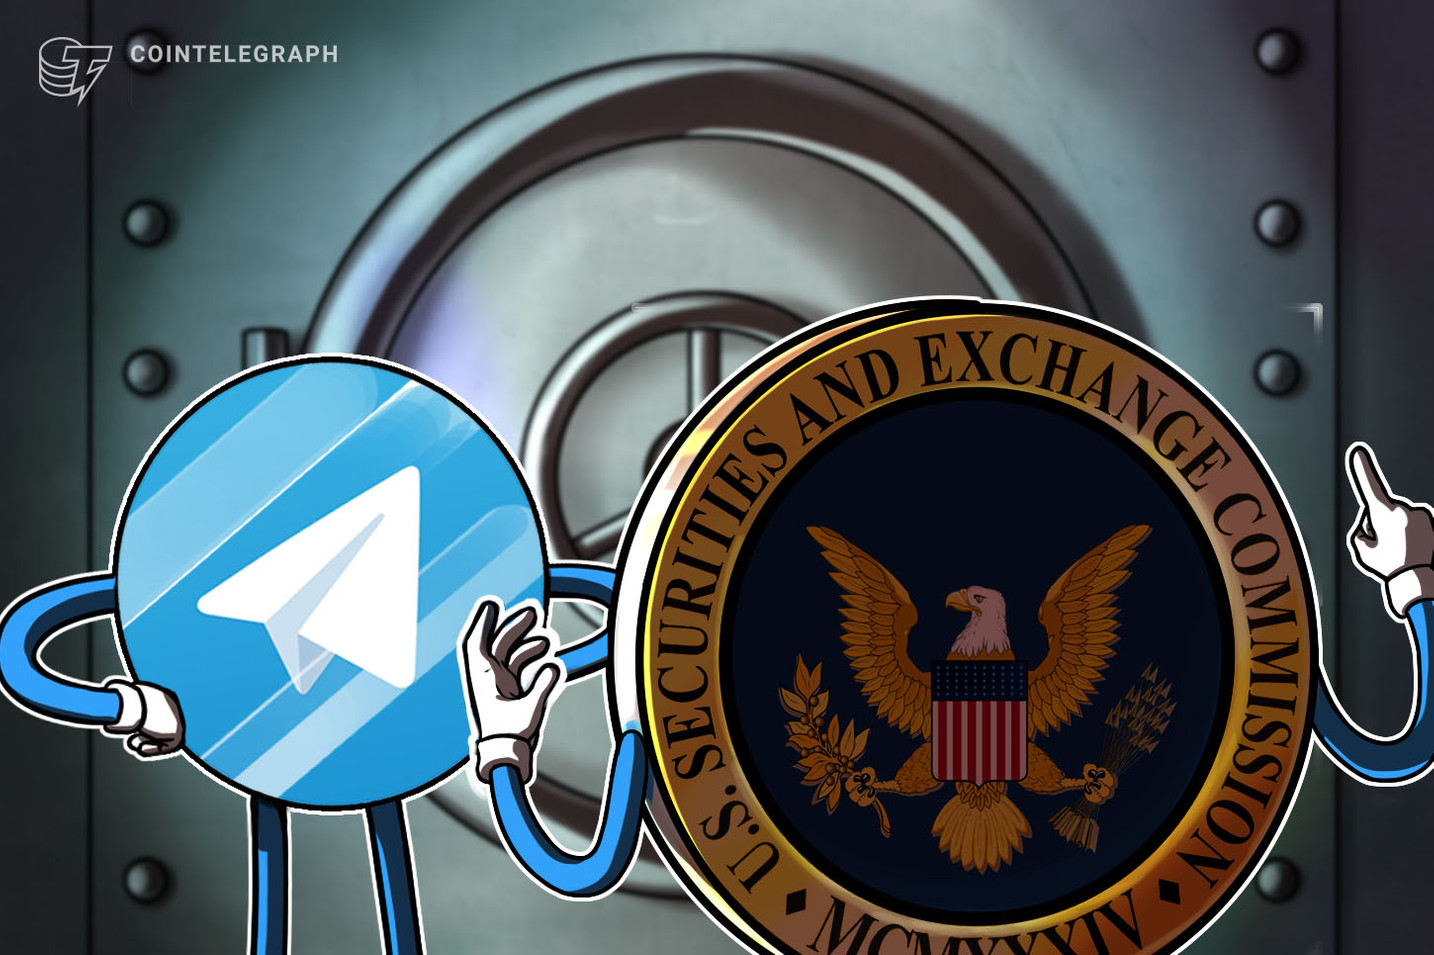 SEC Requests Telegram Banking Data as New Evidence Emerges